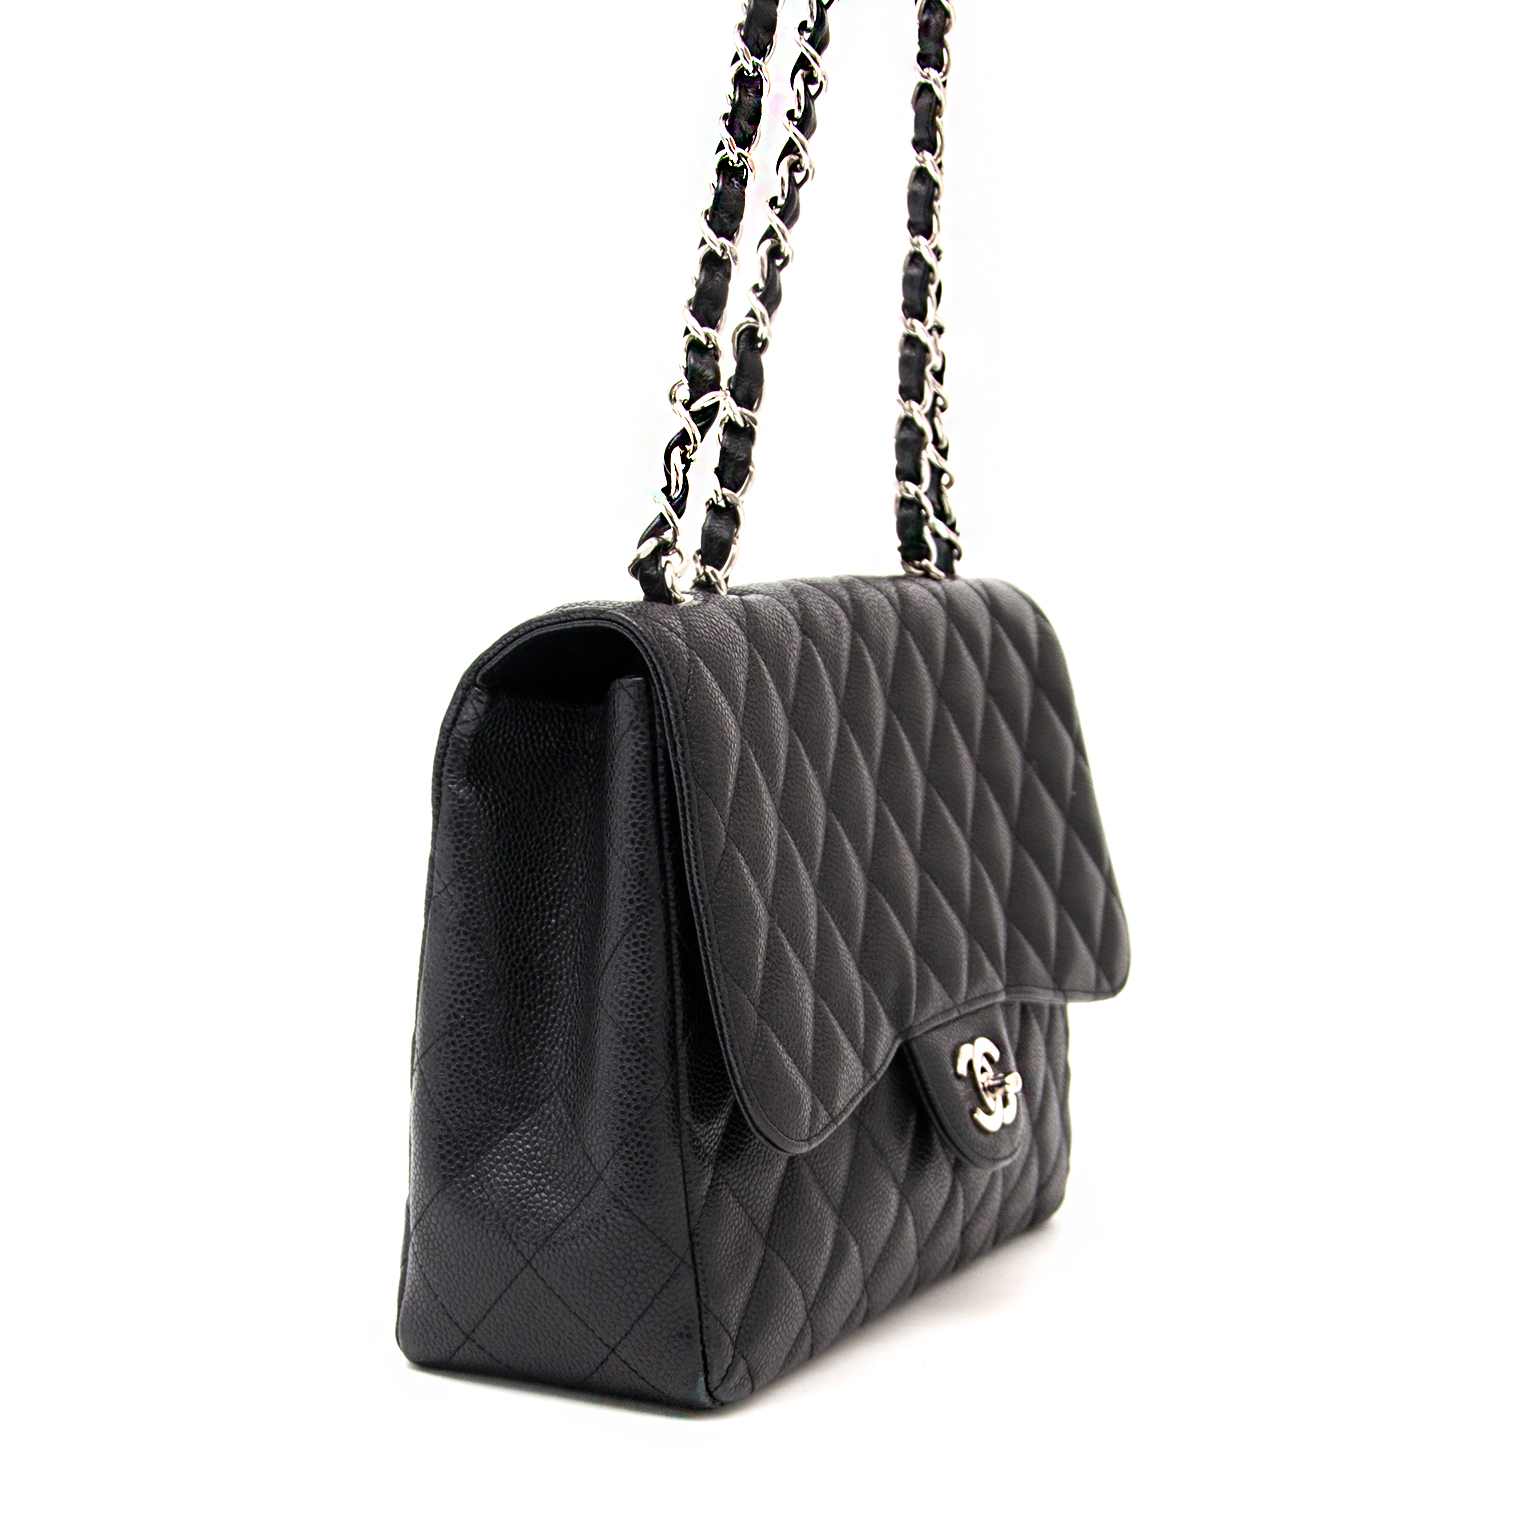 747559217cc6 ... labellov.com shop safe online at the best price Chanel jumbo flap bag  like new webshop www.